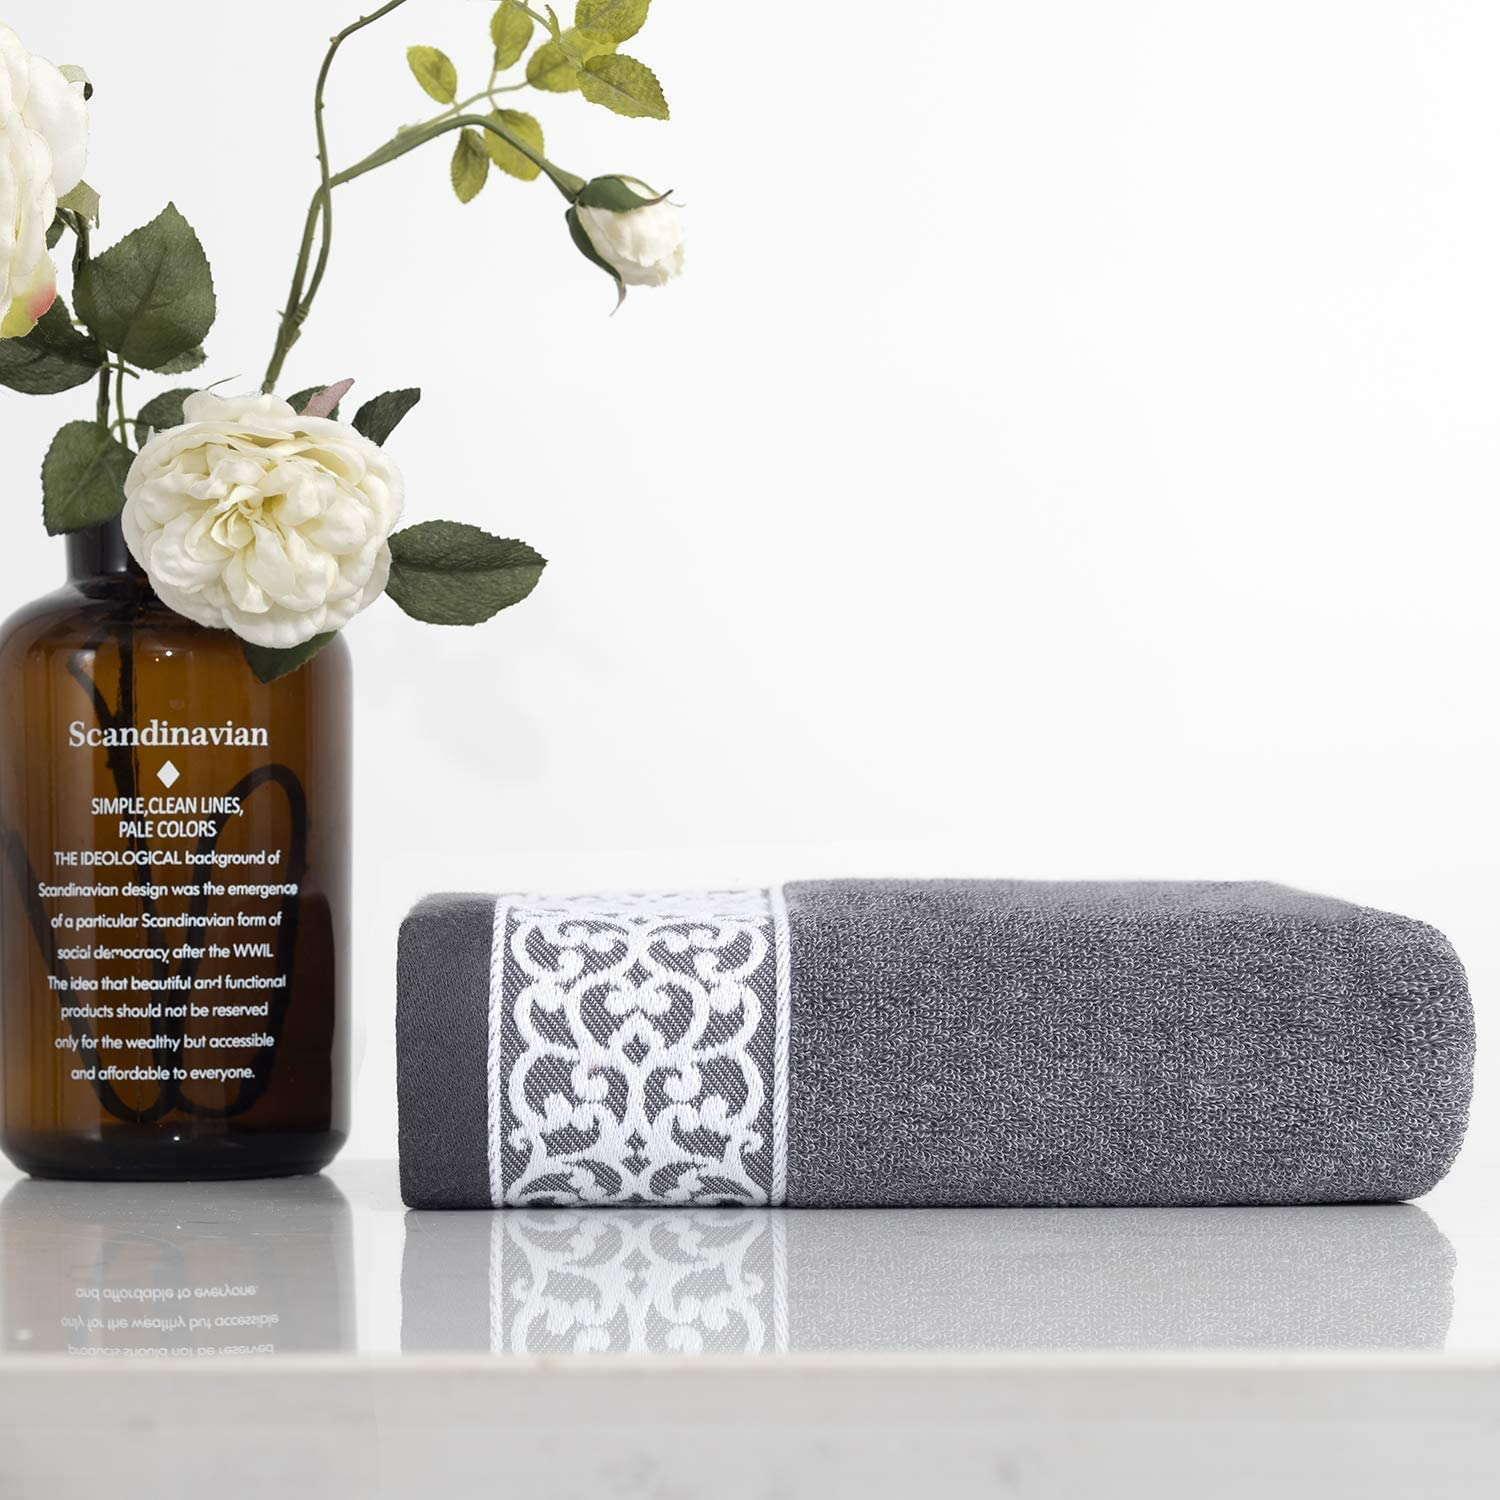 Lvse 1 Pack Luxury Euro Decorative Bath Towel Gray 100% Nature Cotton 70x140cm Light Weight 392 GSM Fluffy Soft and Absorbently for Bathroom Daily ( 70x140cm,400g, Gray): Kitchen & Dining